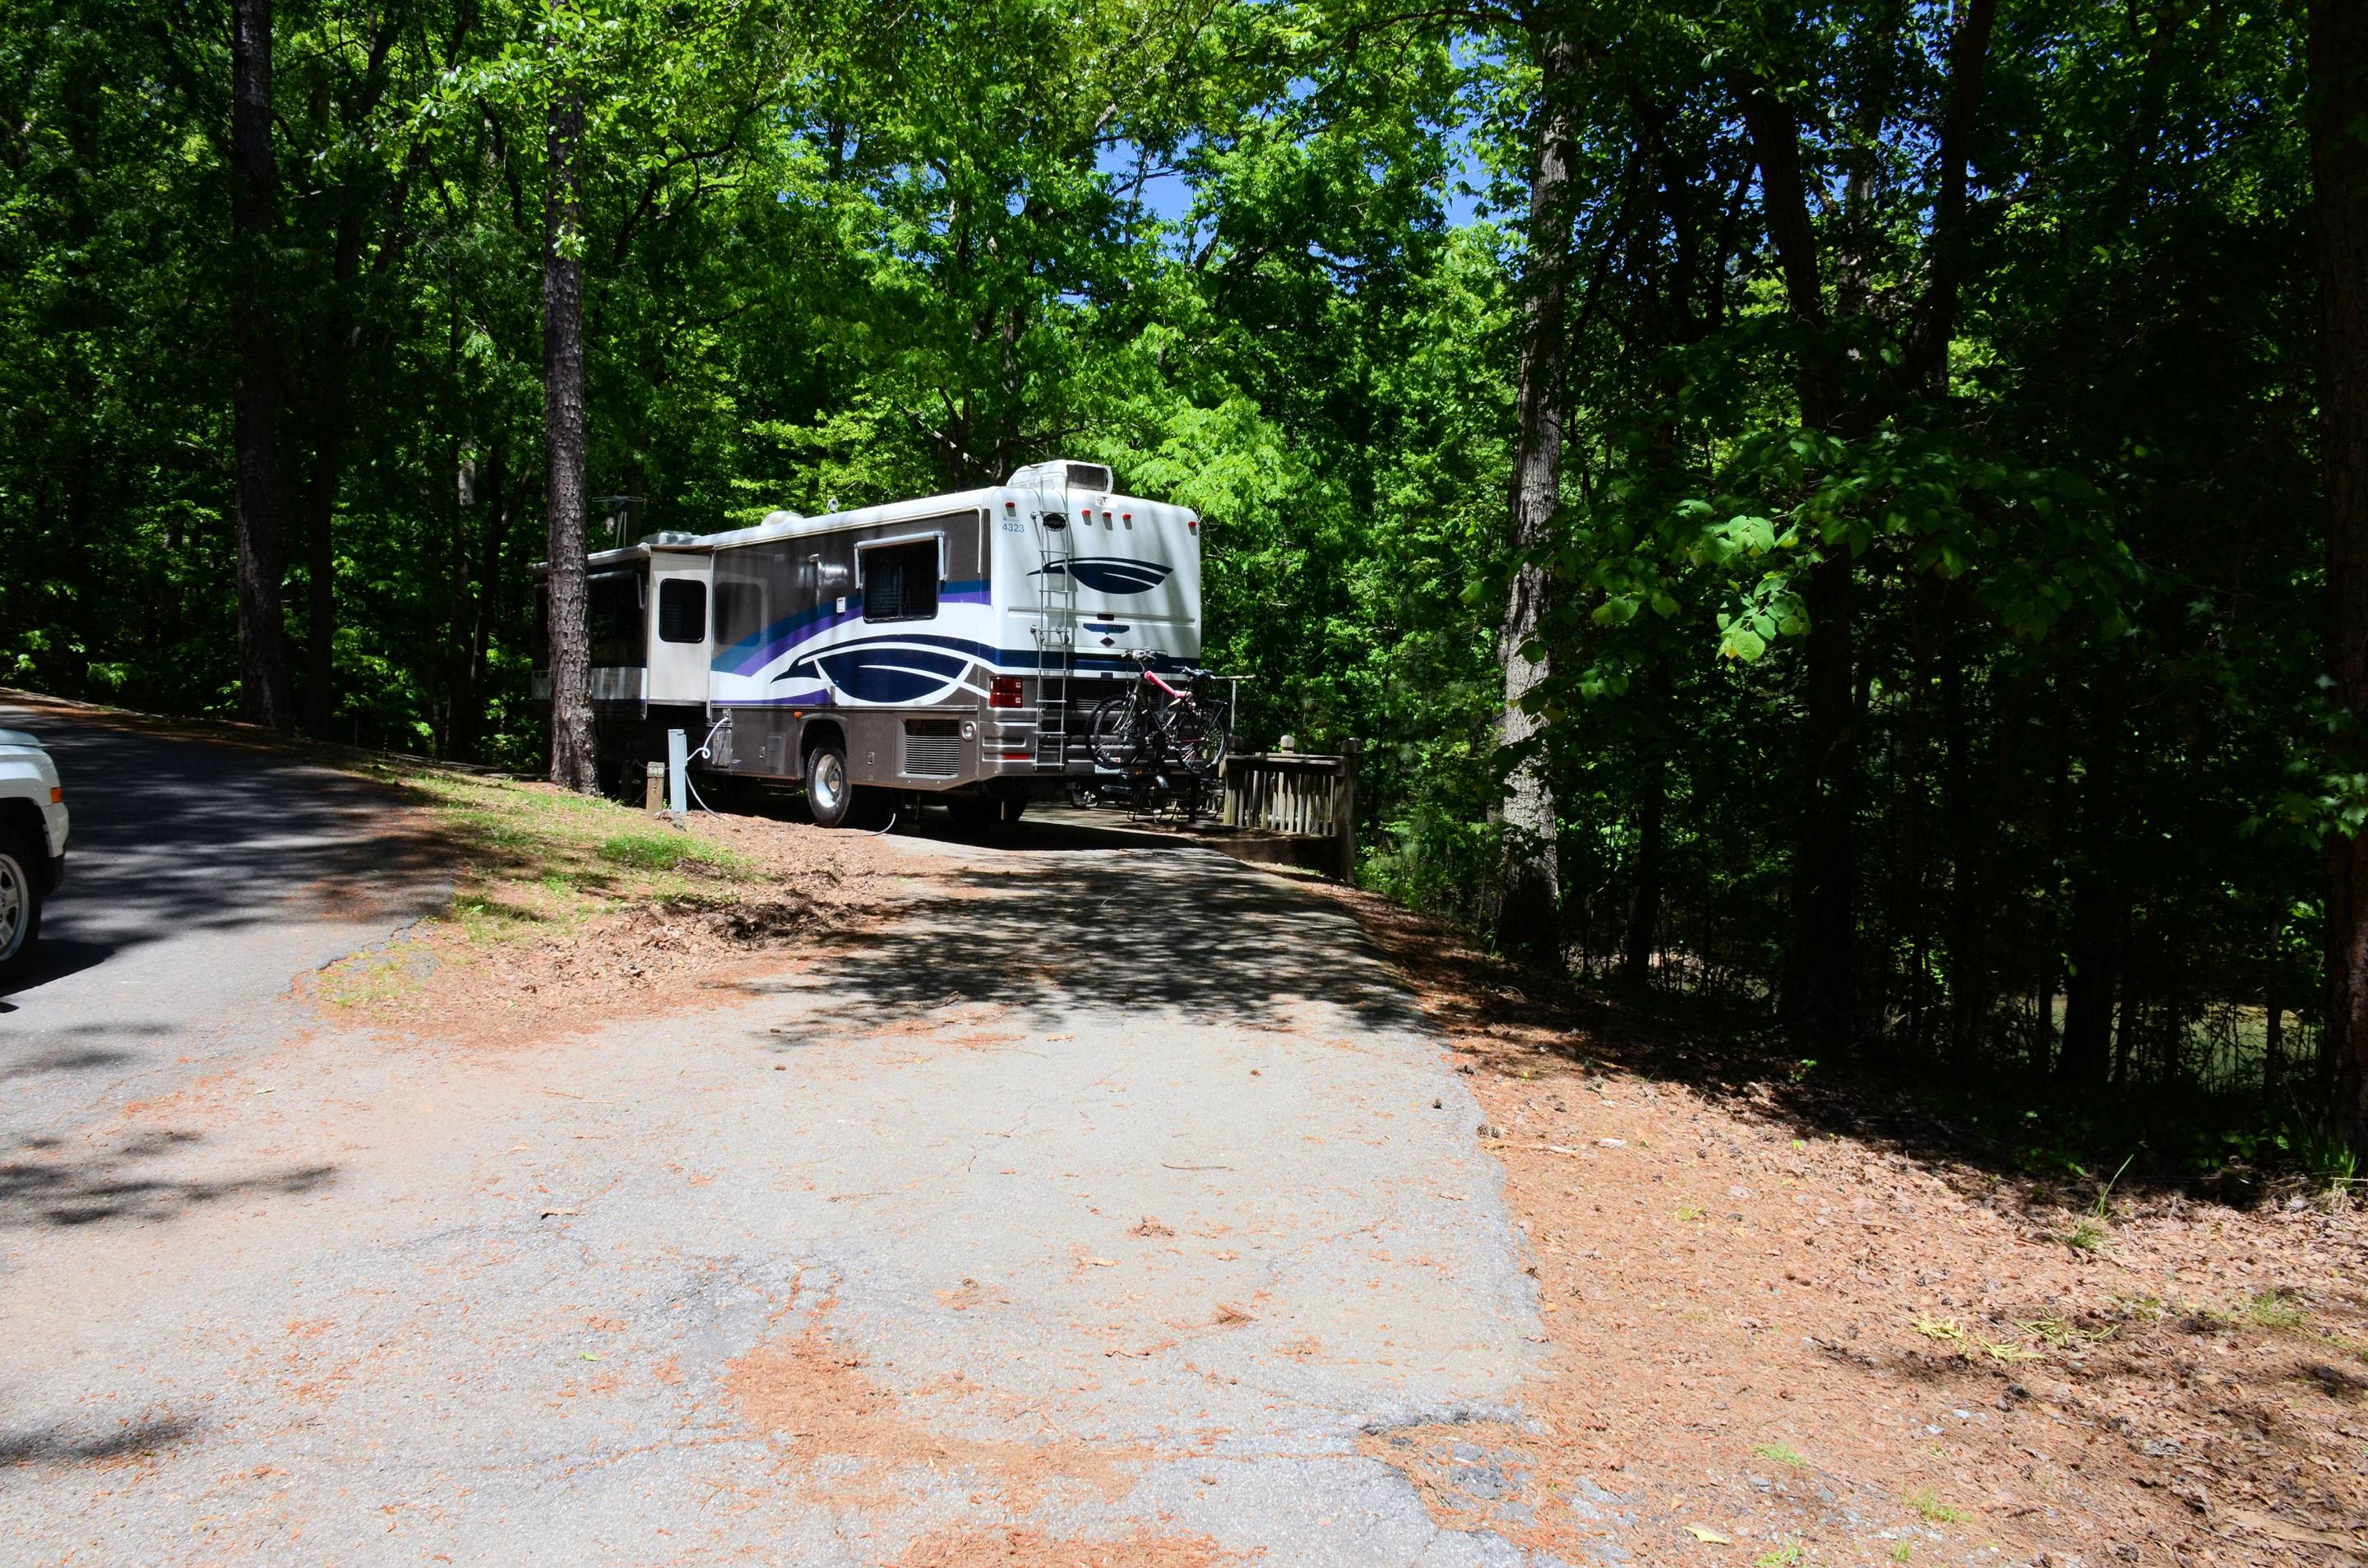 Pull-thru entrance, driveway slope, utilities-side clearance.McKinney Campground, campsite 149.